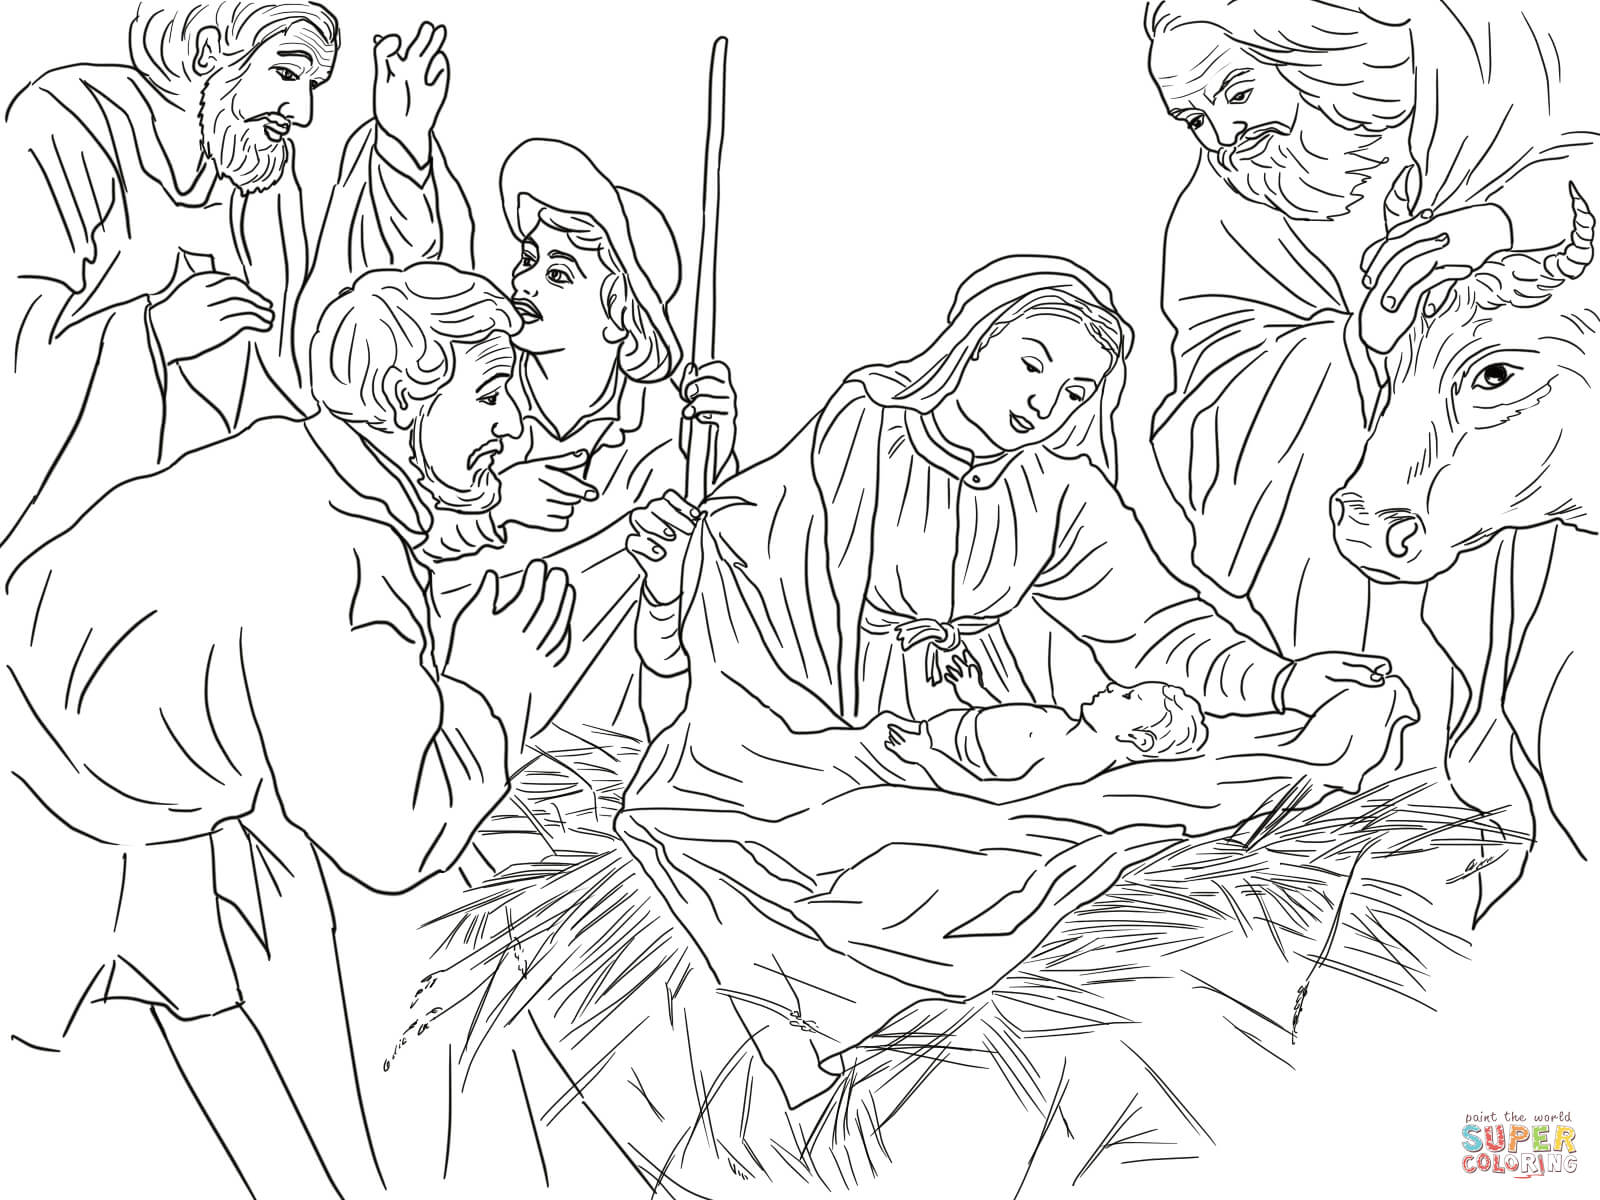 Colouring sheets nativity scene - Nativity Scene With Cute Angels And Animals Coloring Page Free